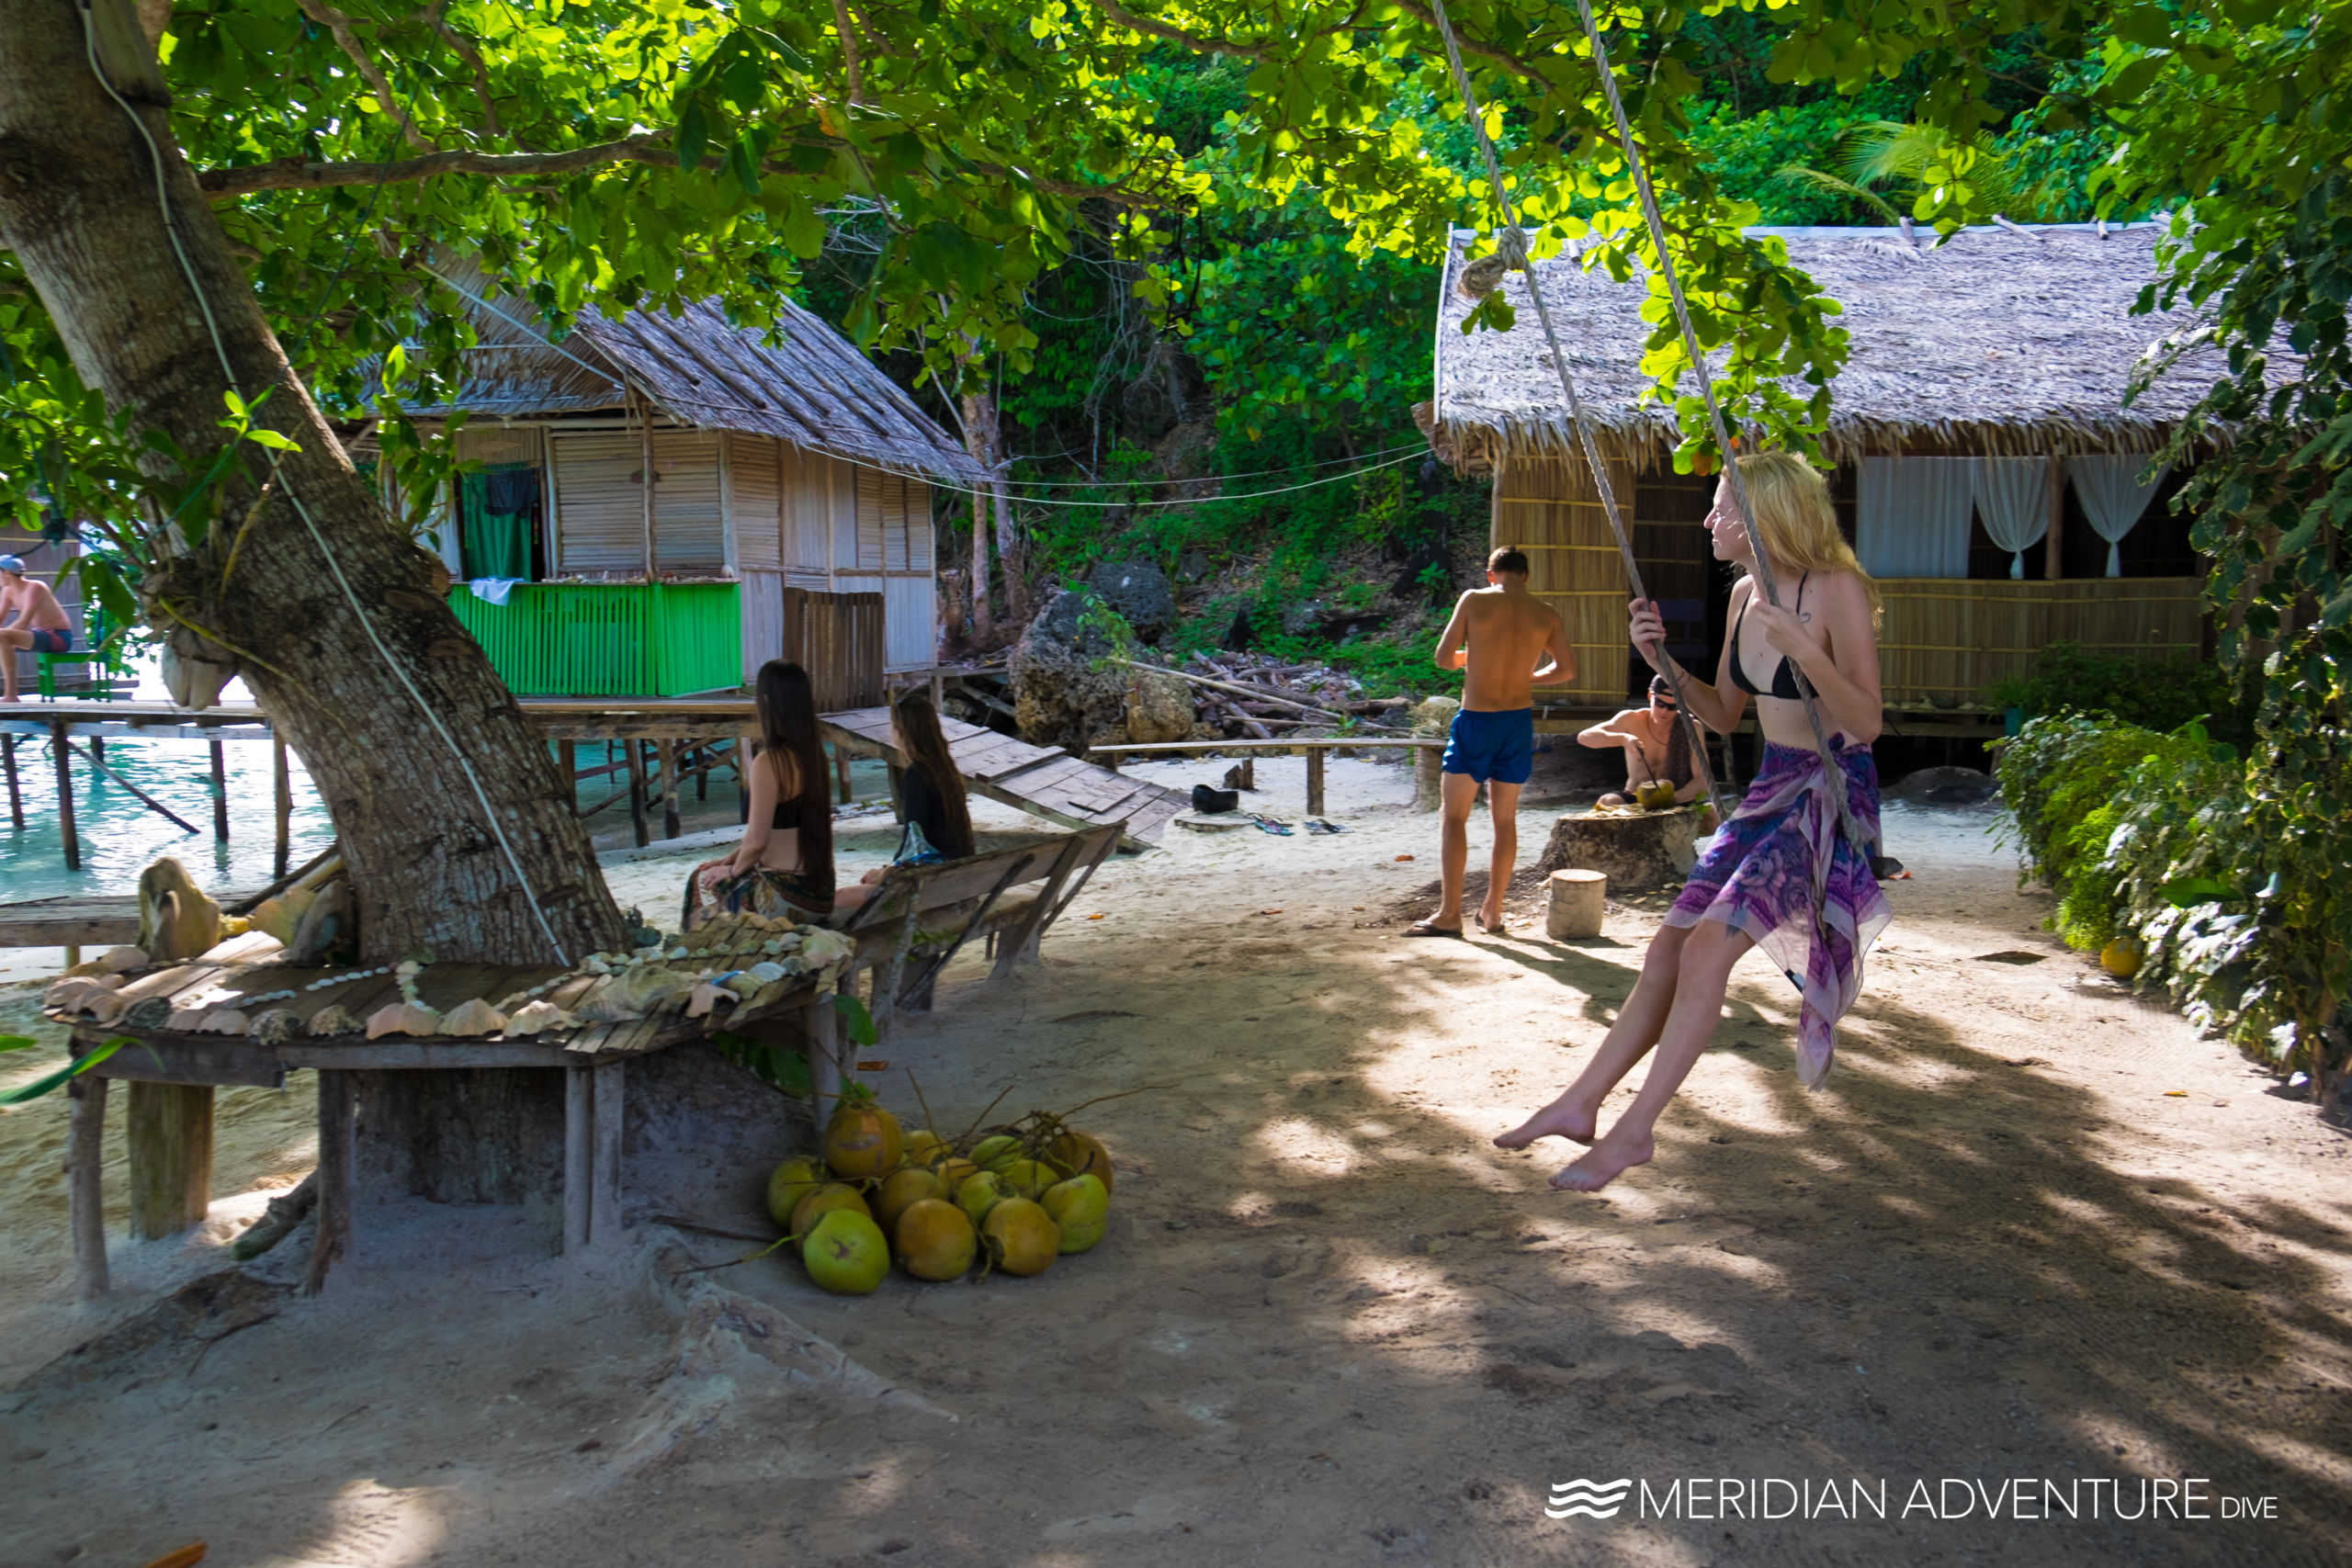 Experience real island life with Meridian Adventure Dive's Homestay Experience.